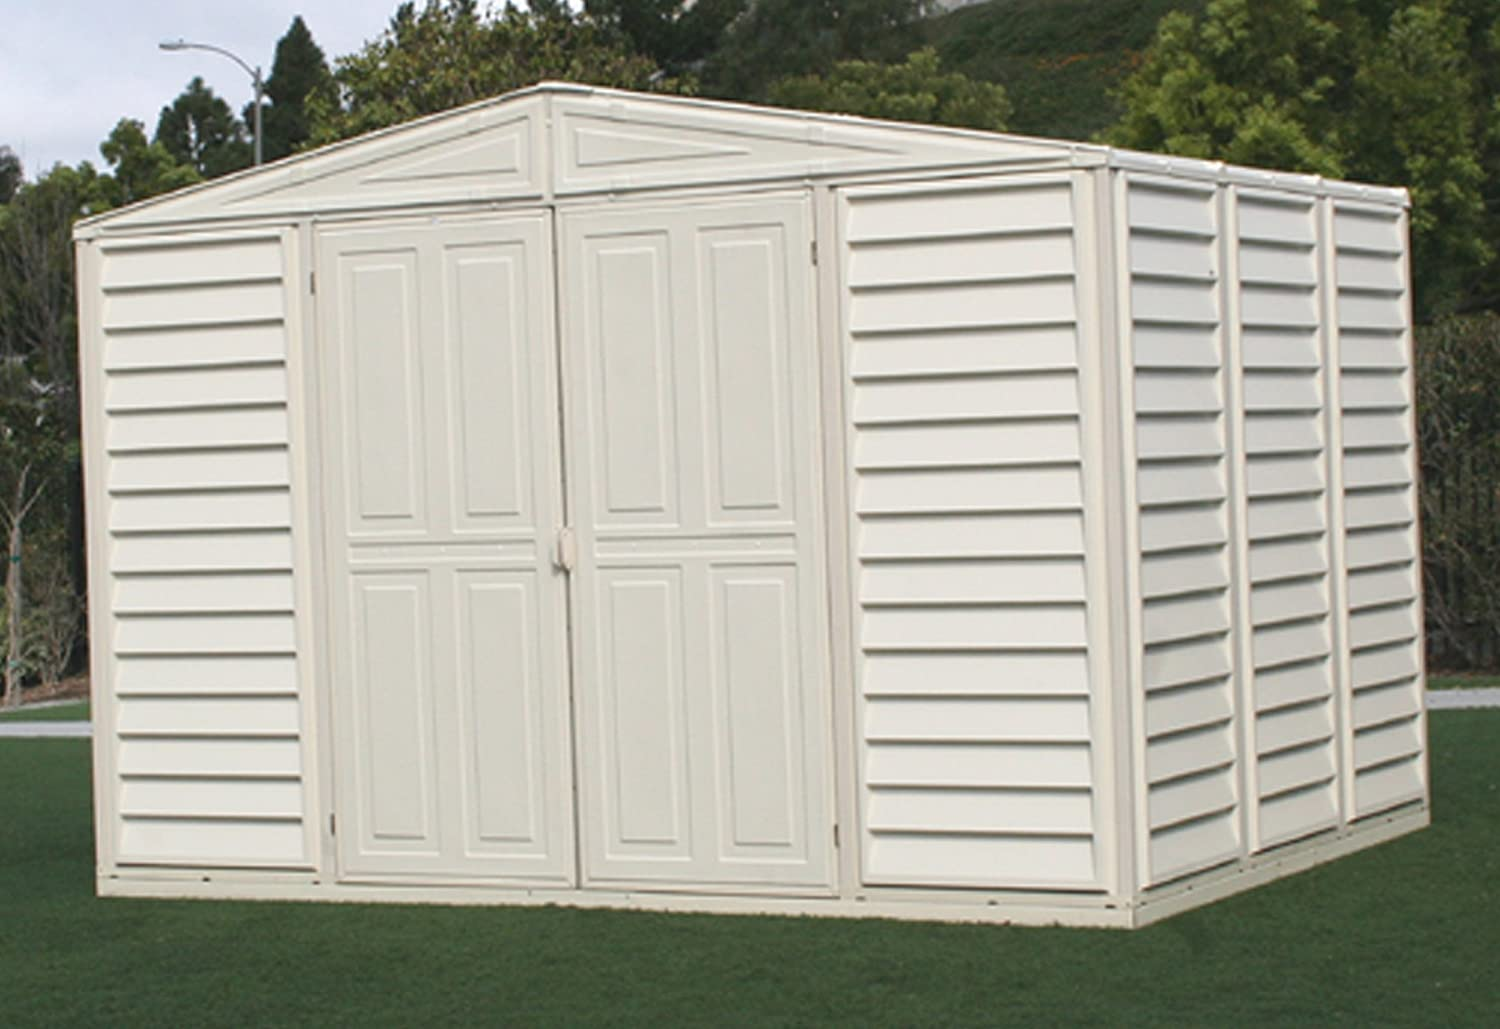 amazoncom duramax model 00211 10x8 woodbridge vinyl storage shed discount storage sheds garden outdoor - Garden Sheds Vinyl